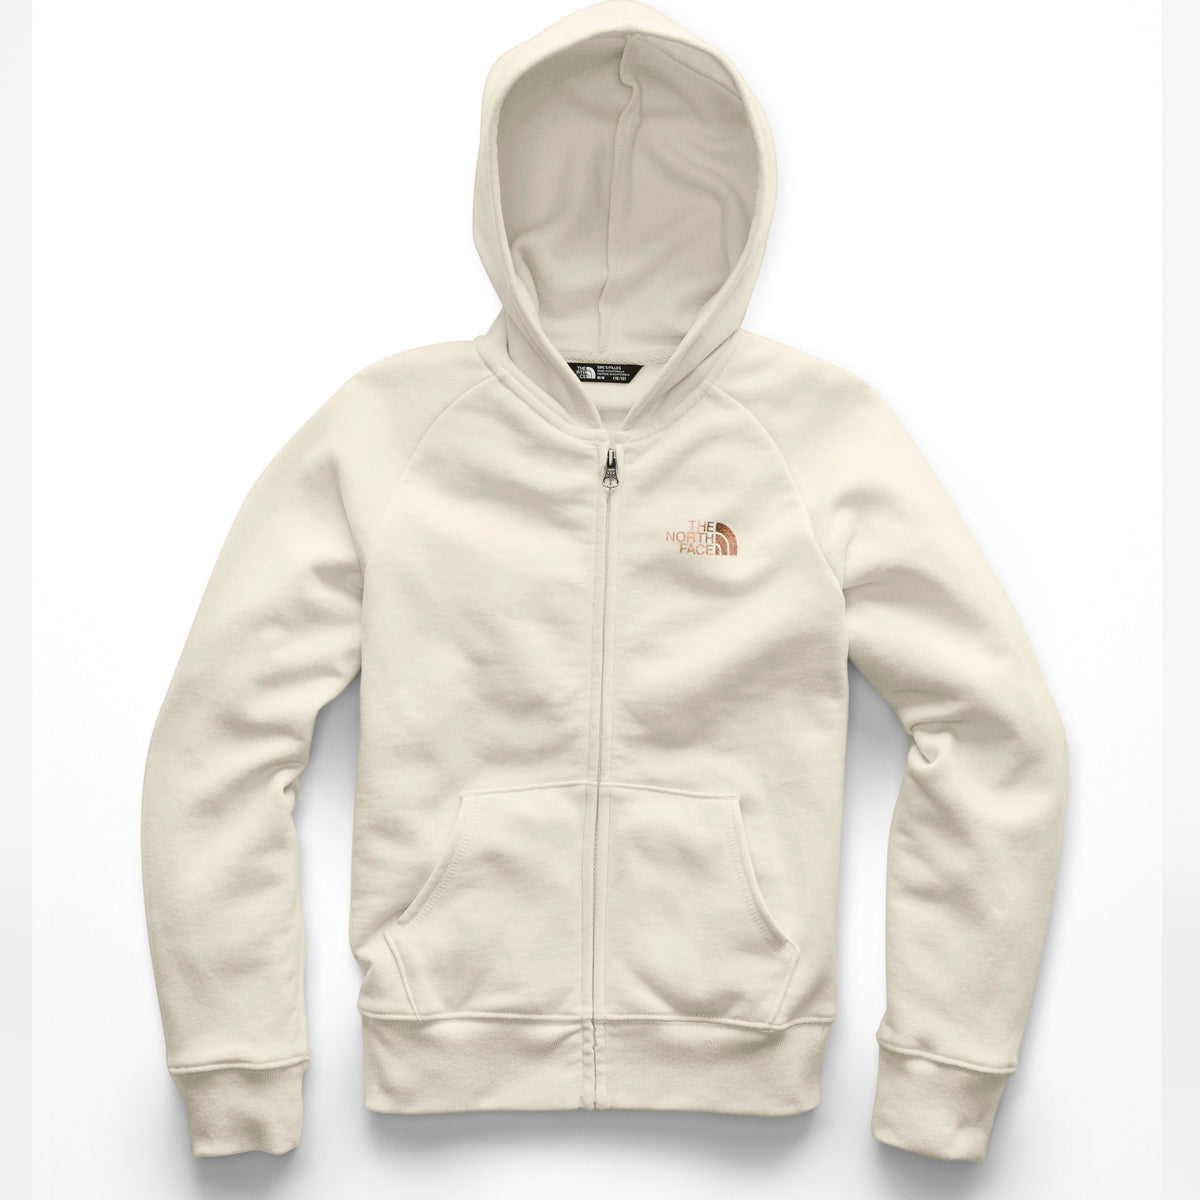 Girls' The North Face | Logowear Full-Zip Hoodie | Antique White